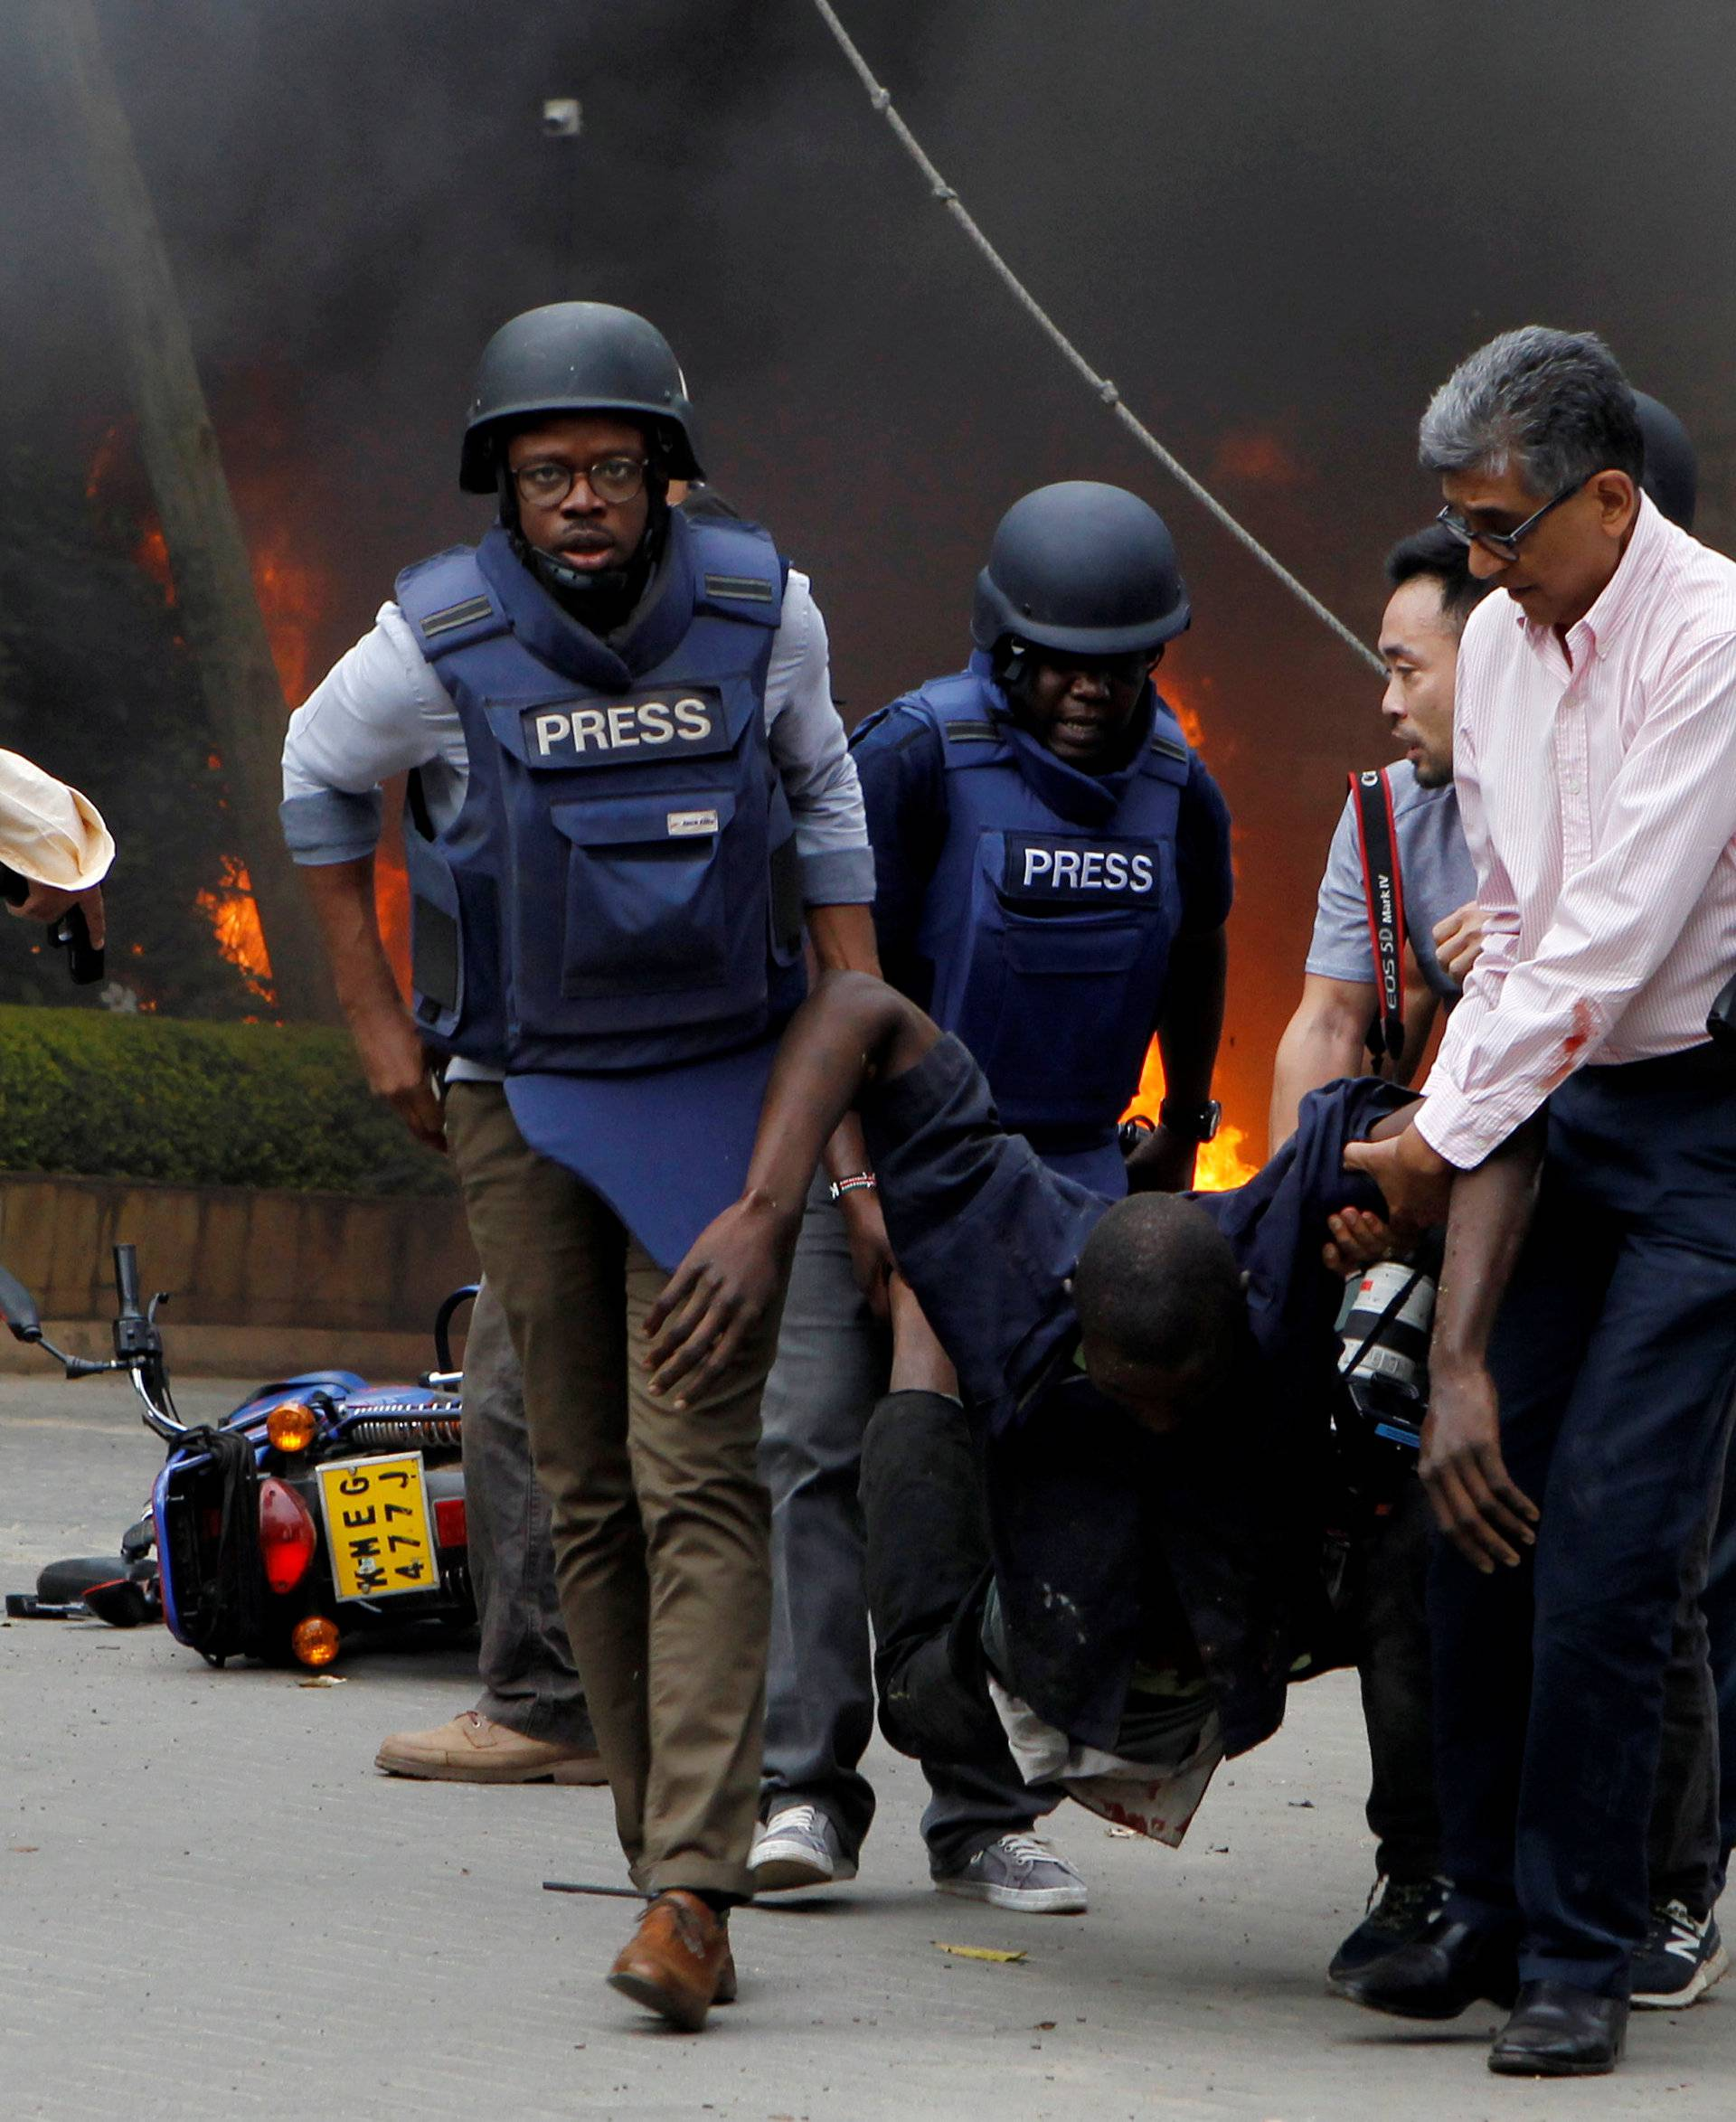 Rescuers and journalists evacuate an injured man from the scene where explosions and gunshots were heard at the Dusit hotel compound, in Nairobi